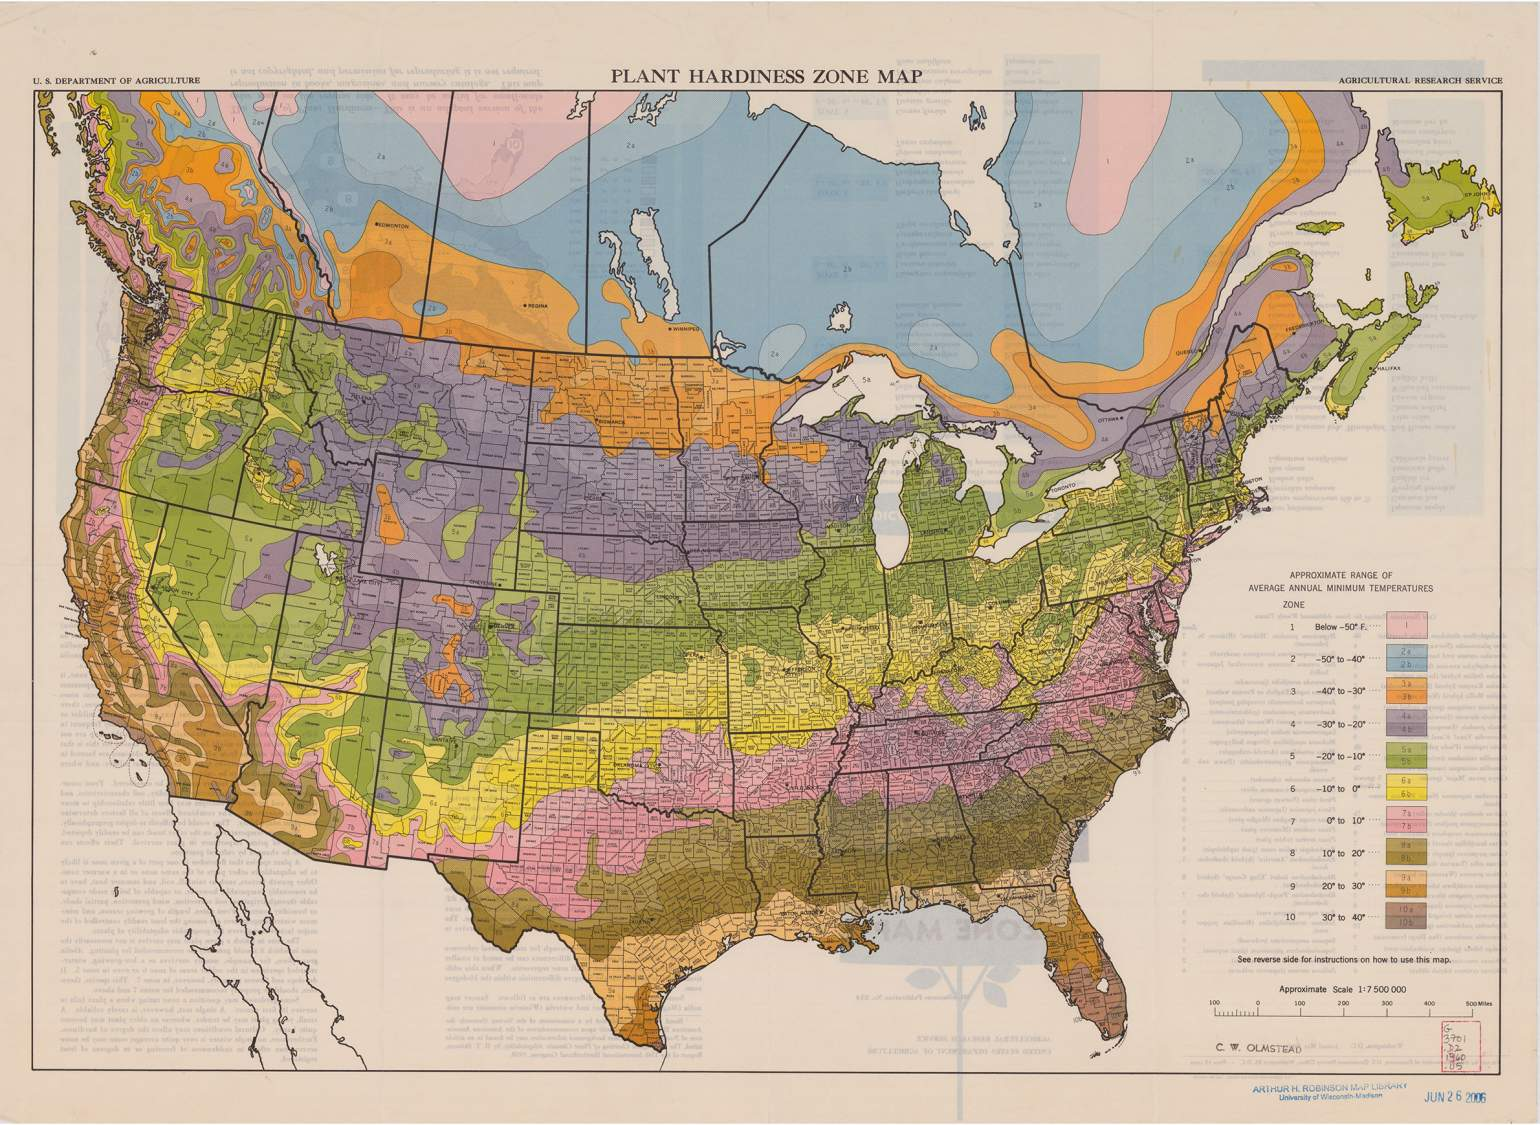 Where In Wisconsin Do Hardiness Zone Shifts Reflect A Changing - Us-plant-hardiness-zone-map